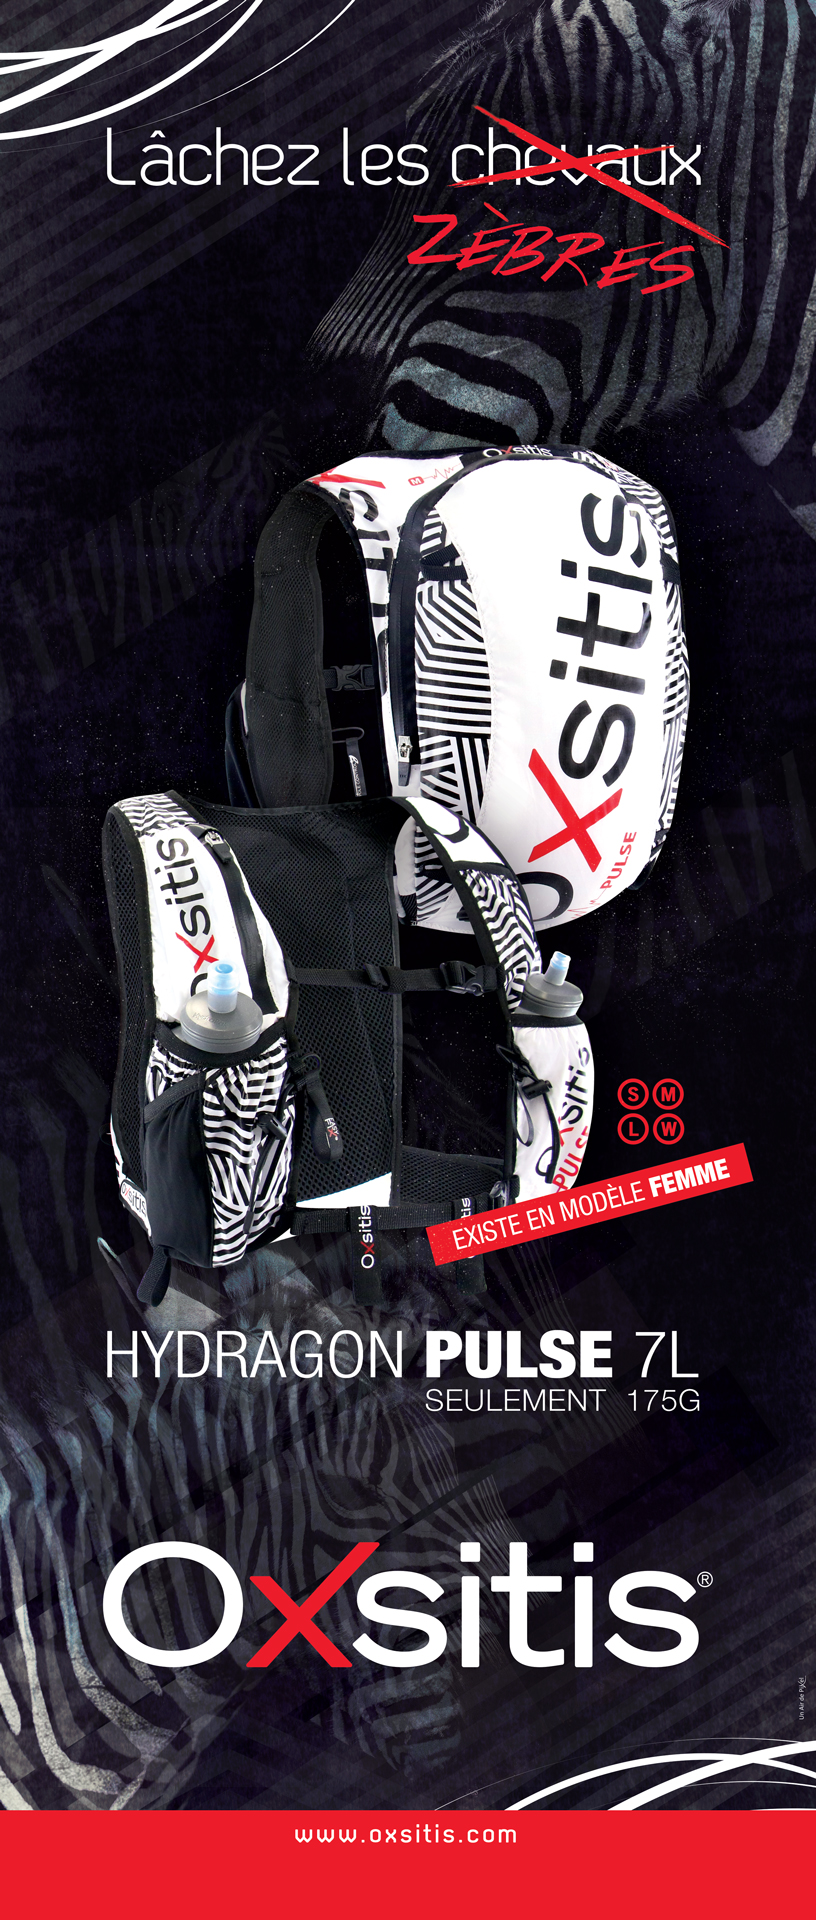 Roll up sac hydragon pulse 7